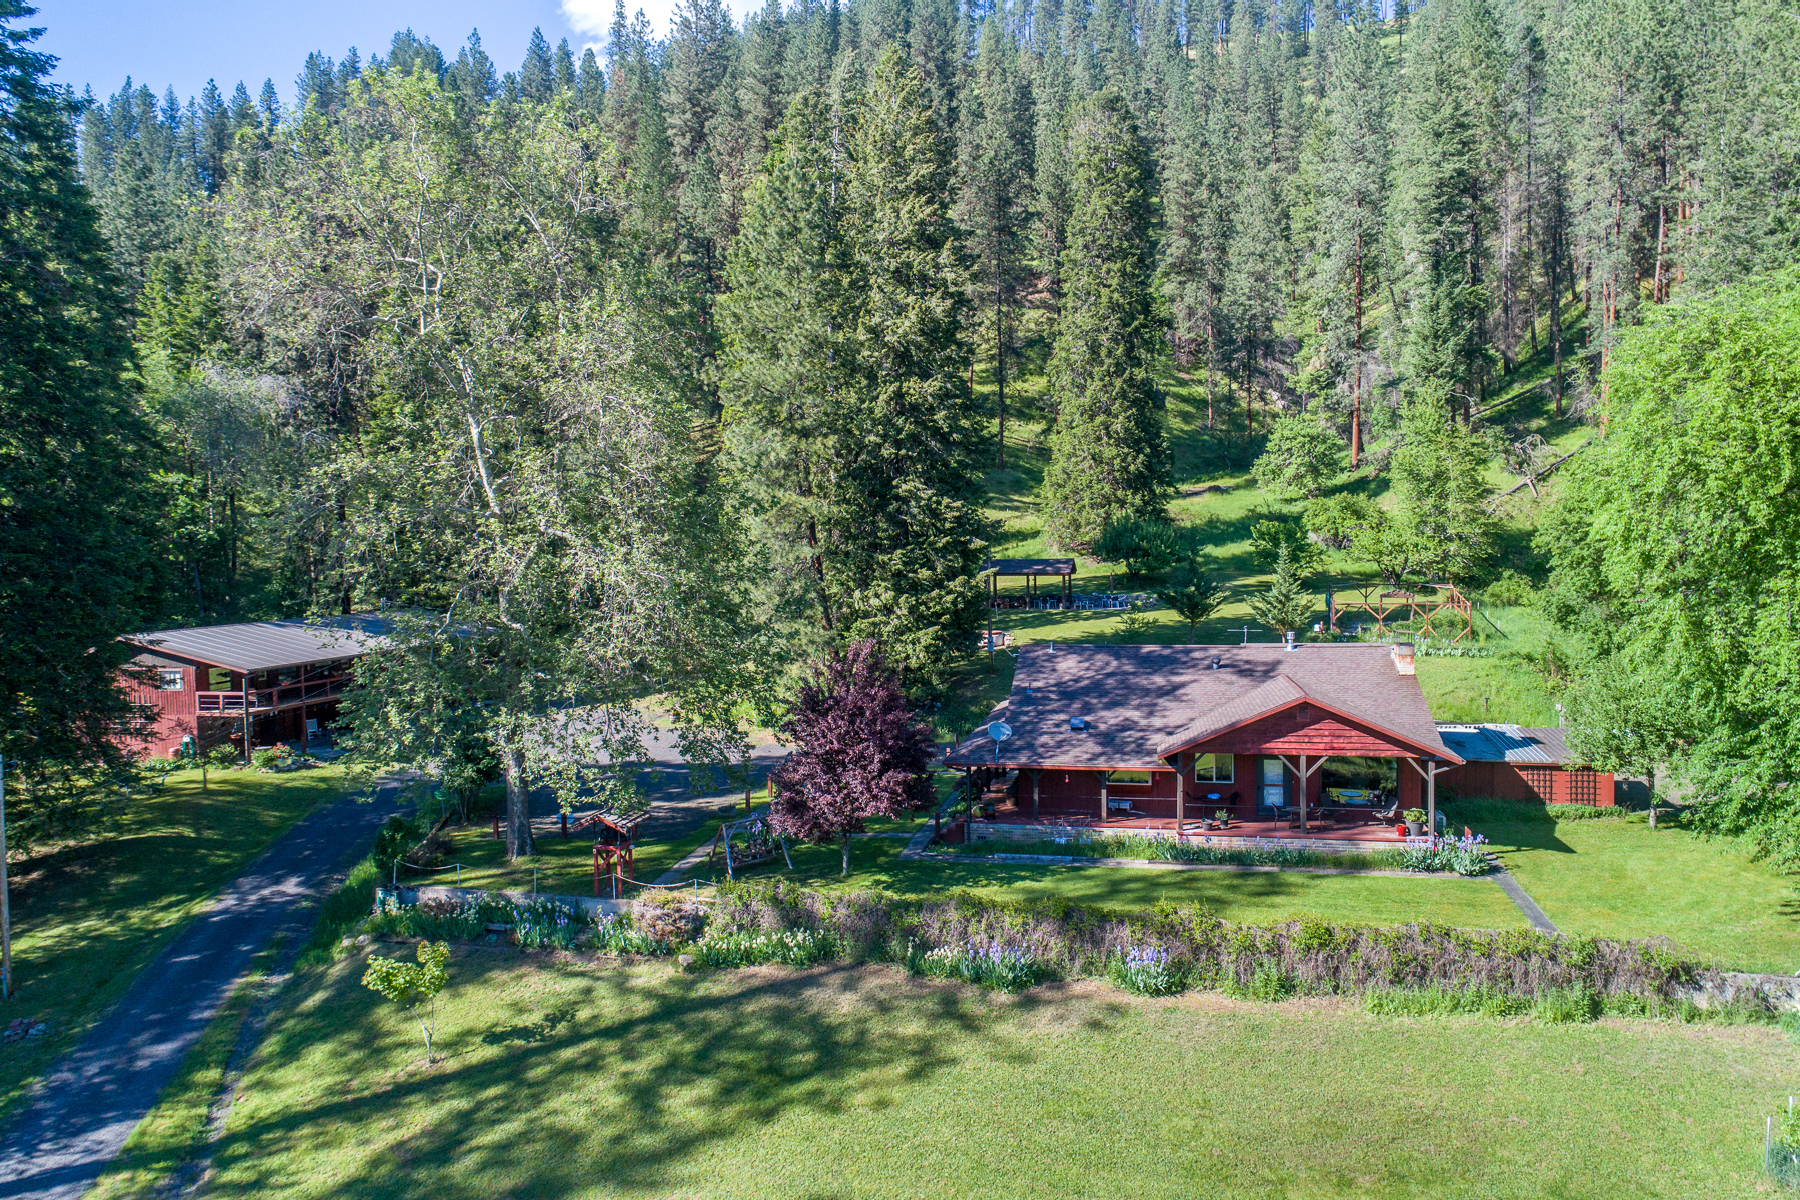 Single Family Home for Sale at REFLECTIONS RESIDENCE 6873 US Highway 12 Kooskia, Idaho 83539